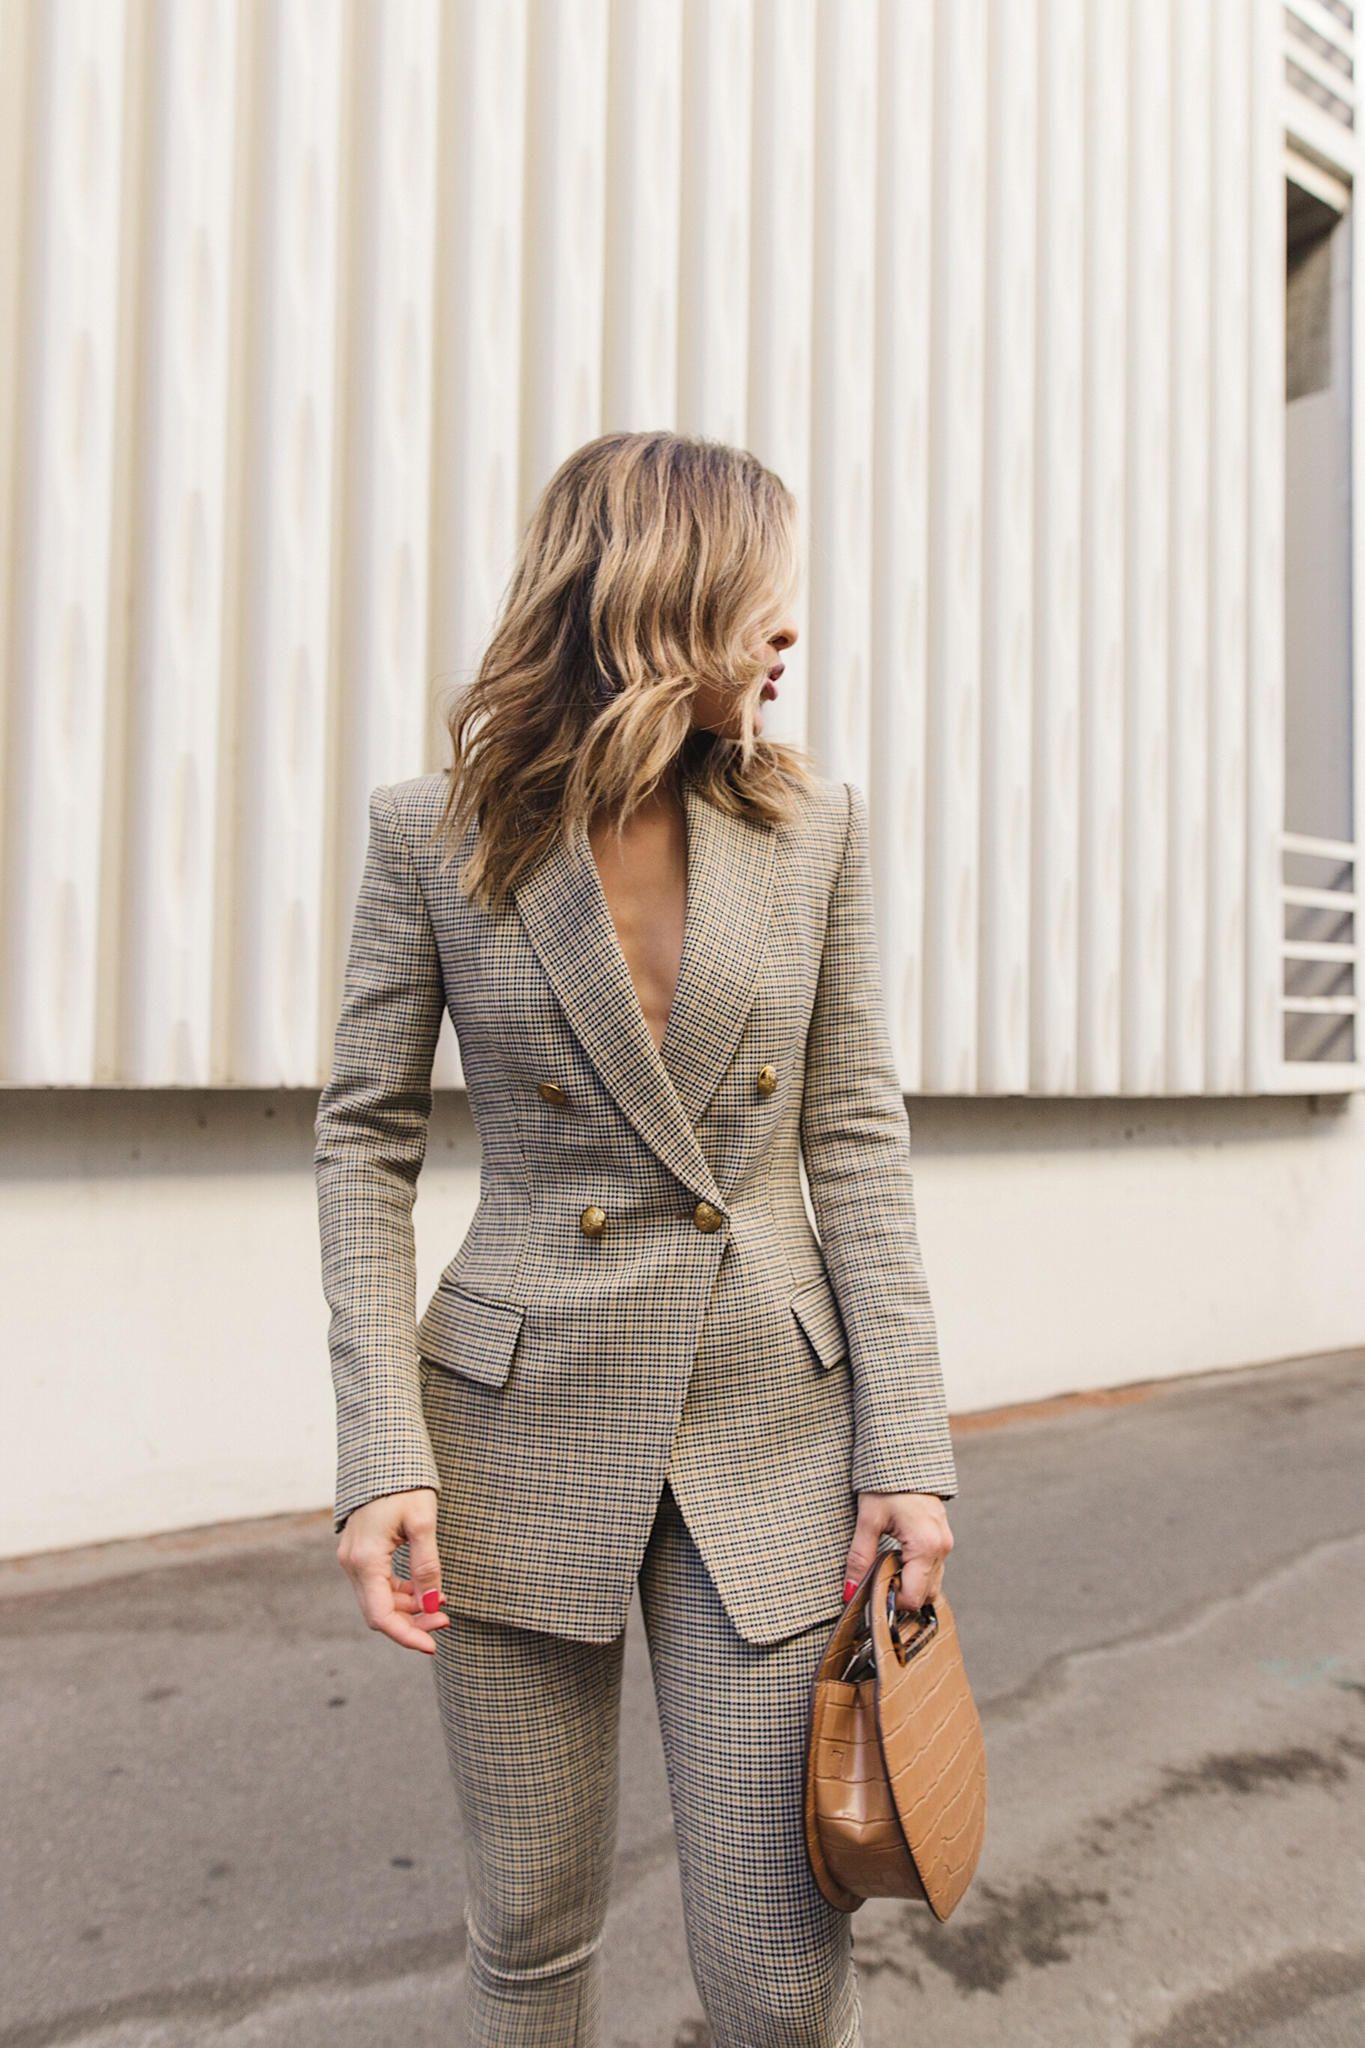 The 10 Fashion Brands I've Been Obsessed With